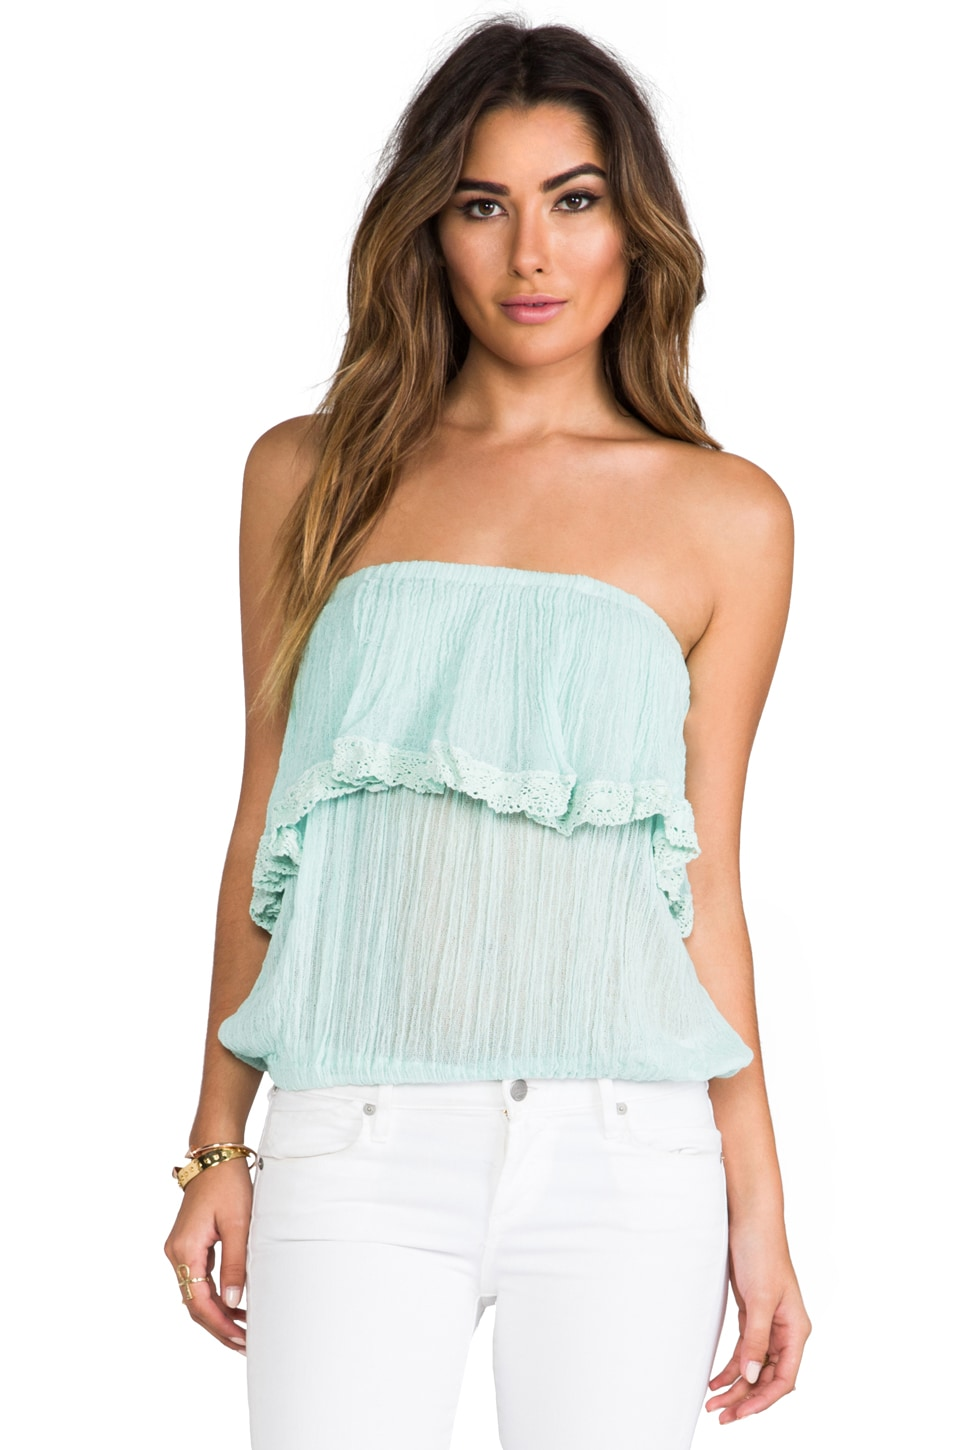 Jen's Pirate Booty Cha Cha Tube Top in Mint